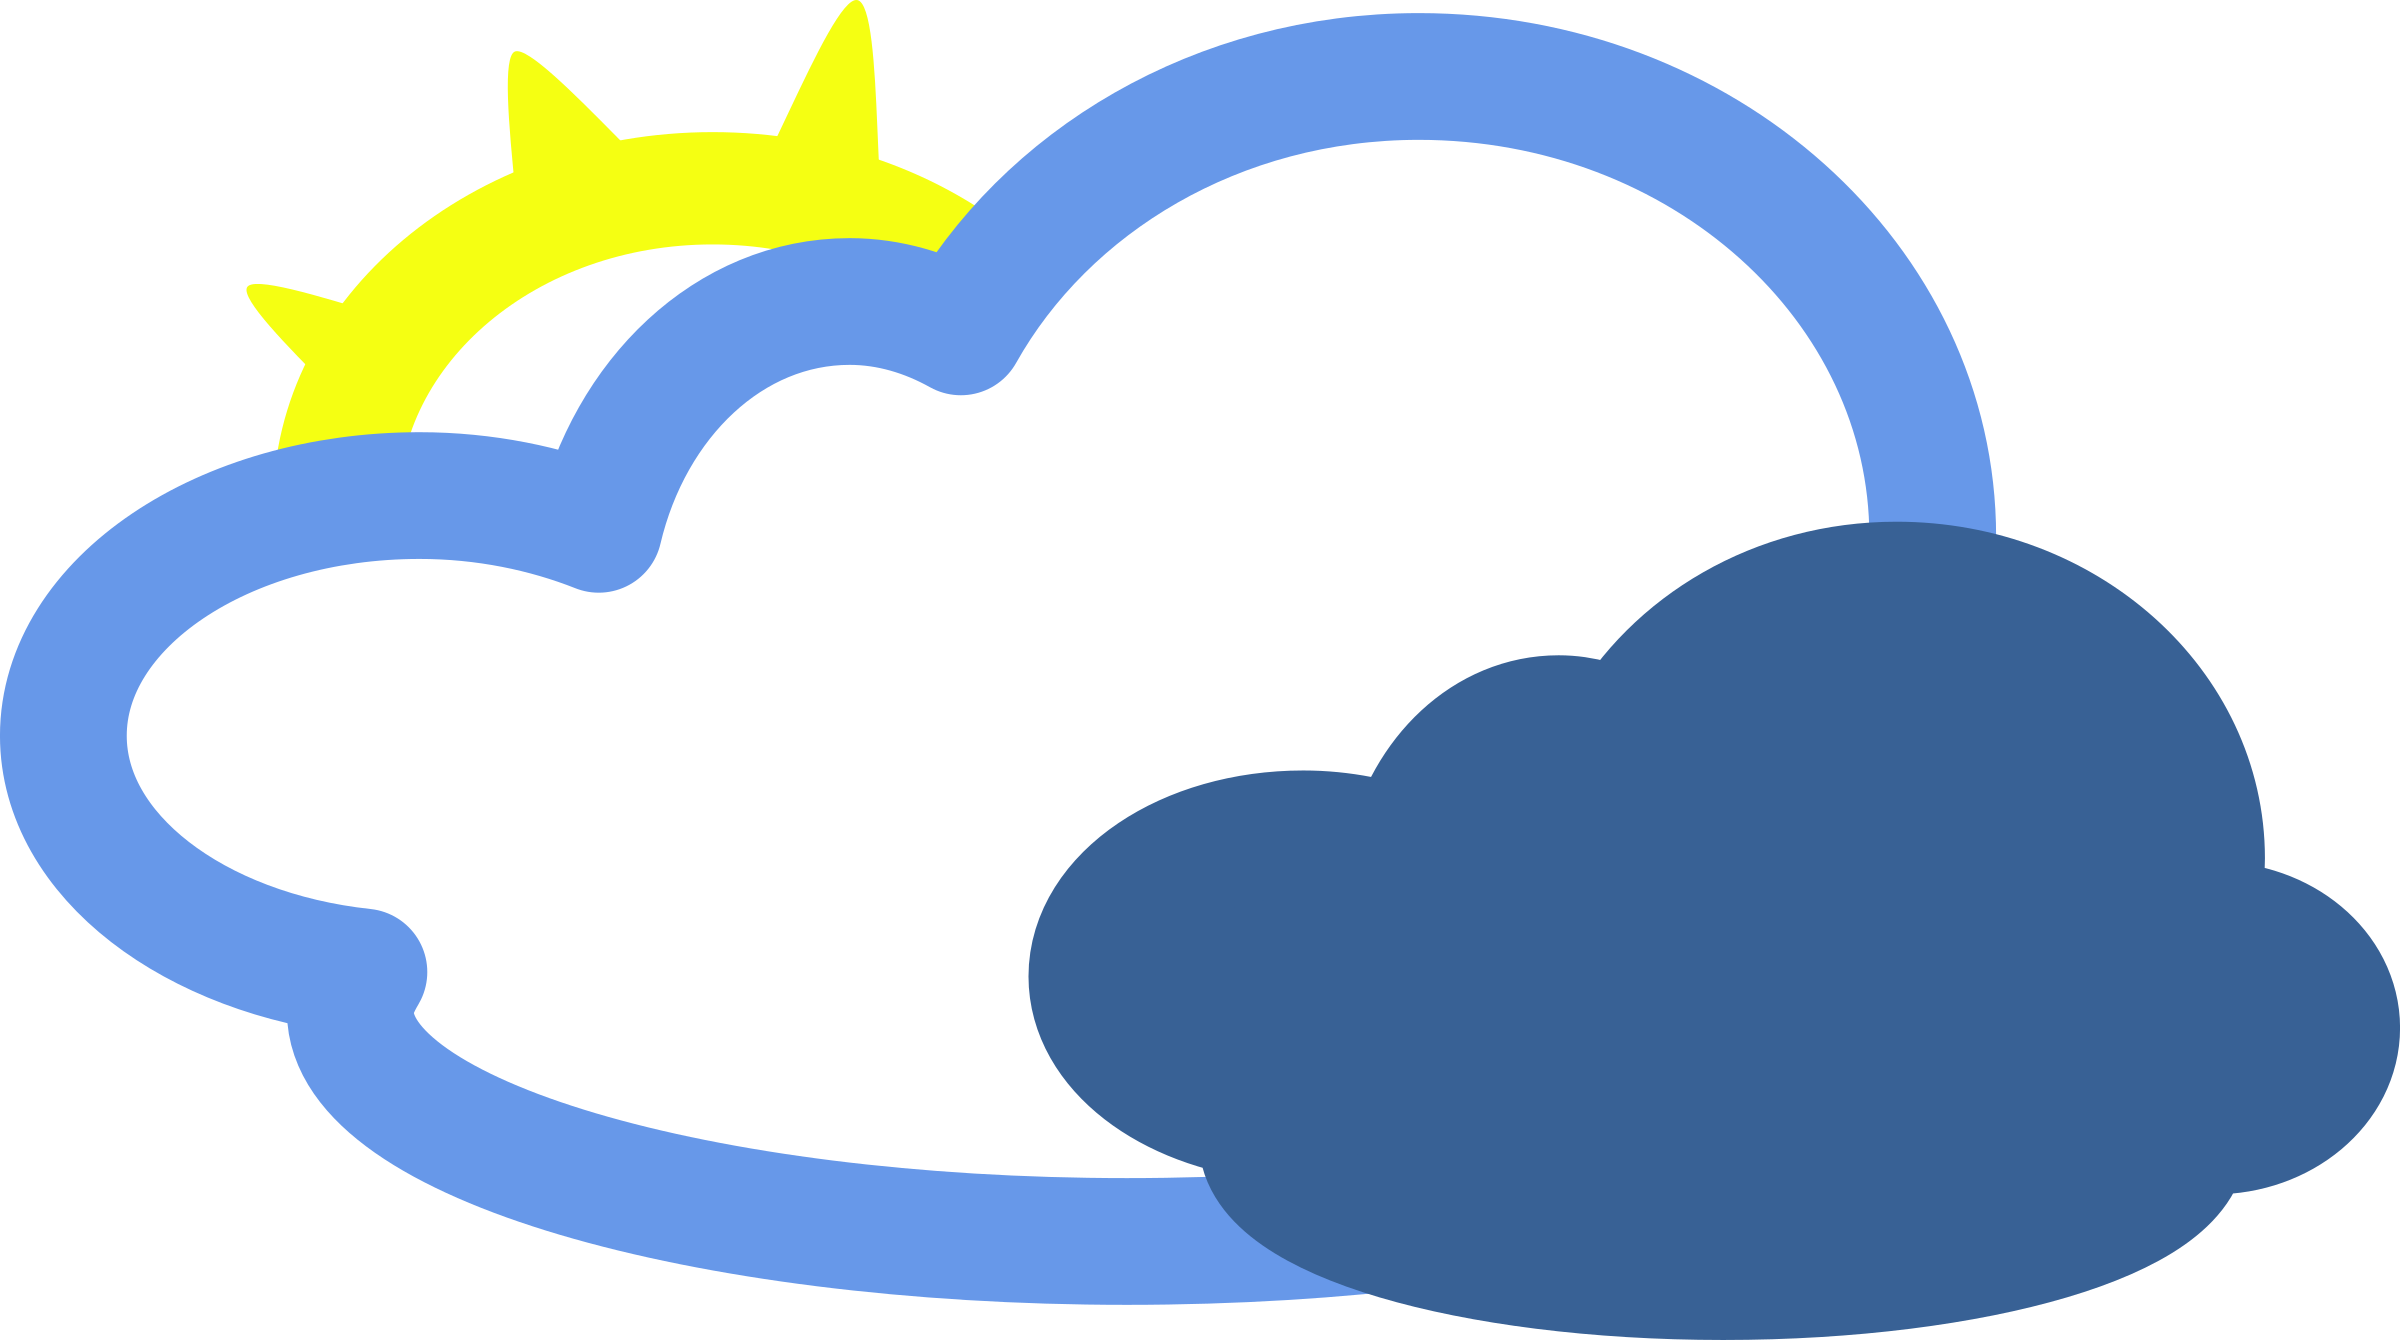 Windy weather at getdrawings. Fog clipart cold cloud